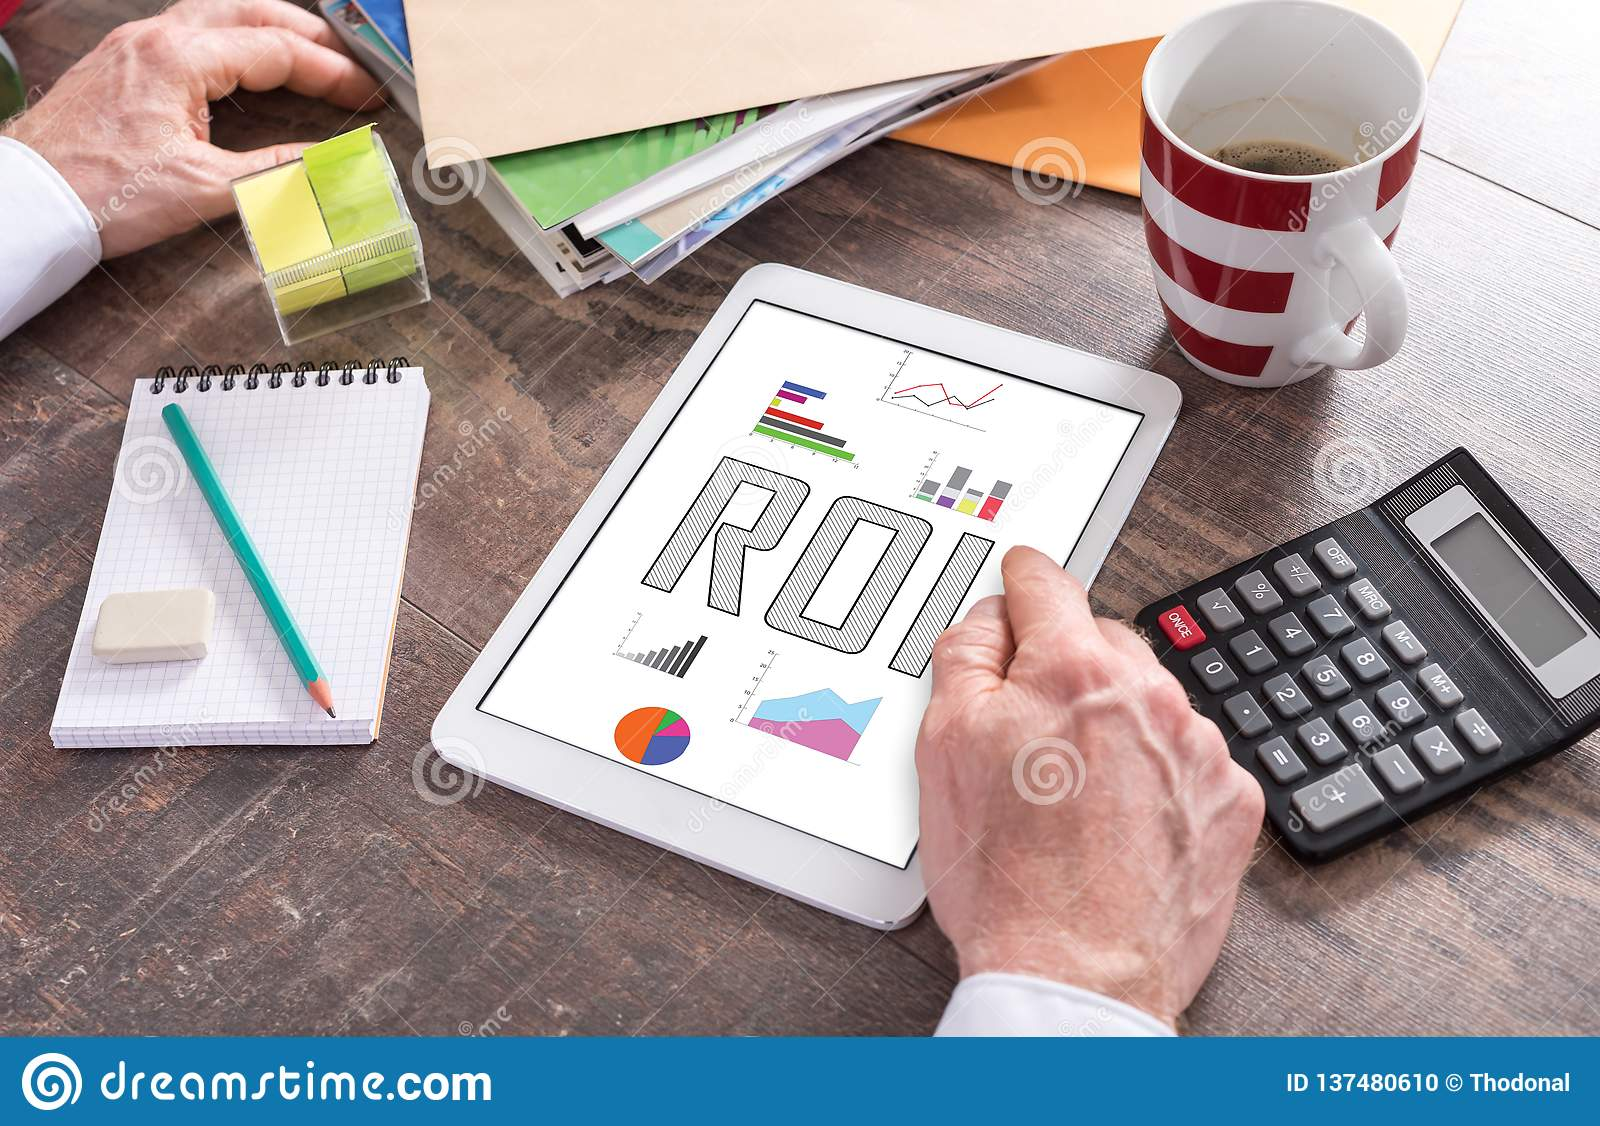 Roi concept on a tablet. Man using a tablet showing a roi concept stock photo